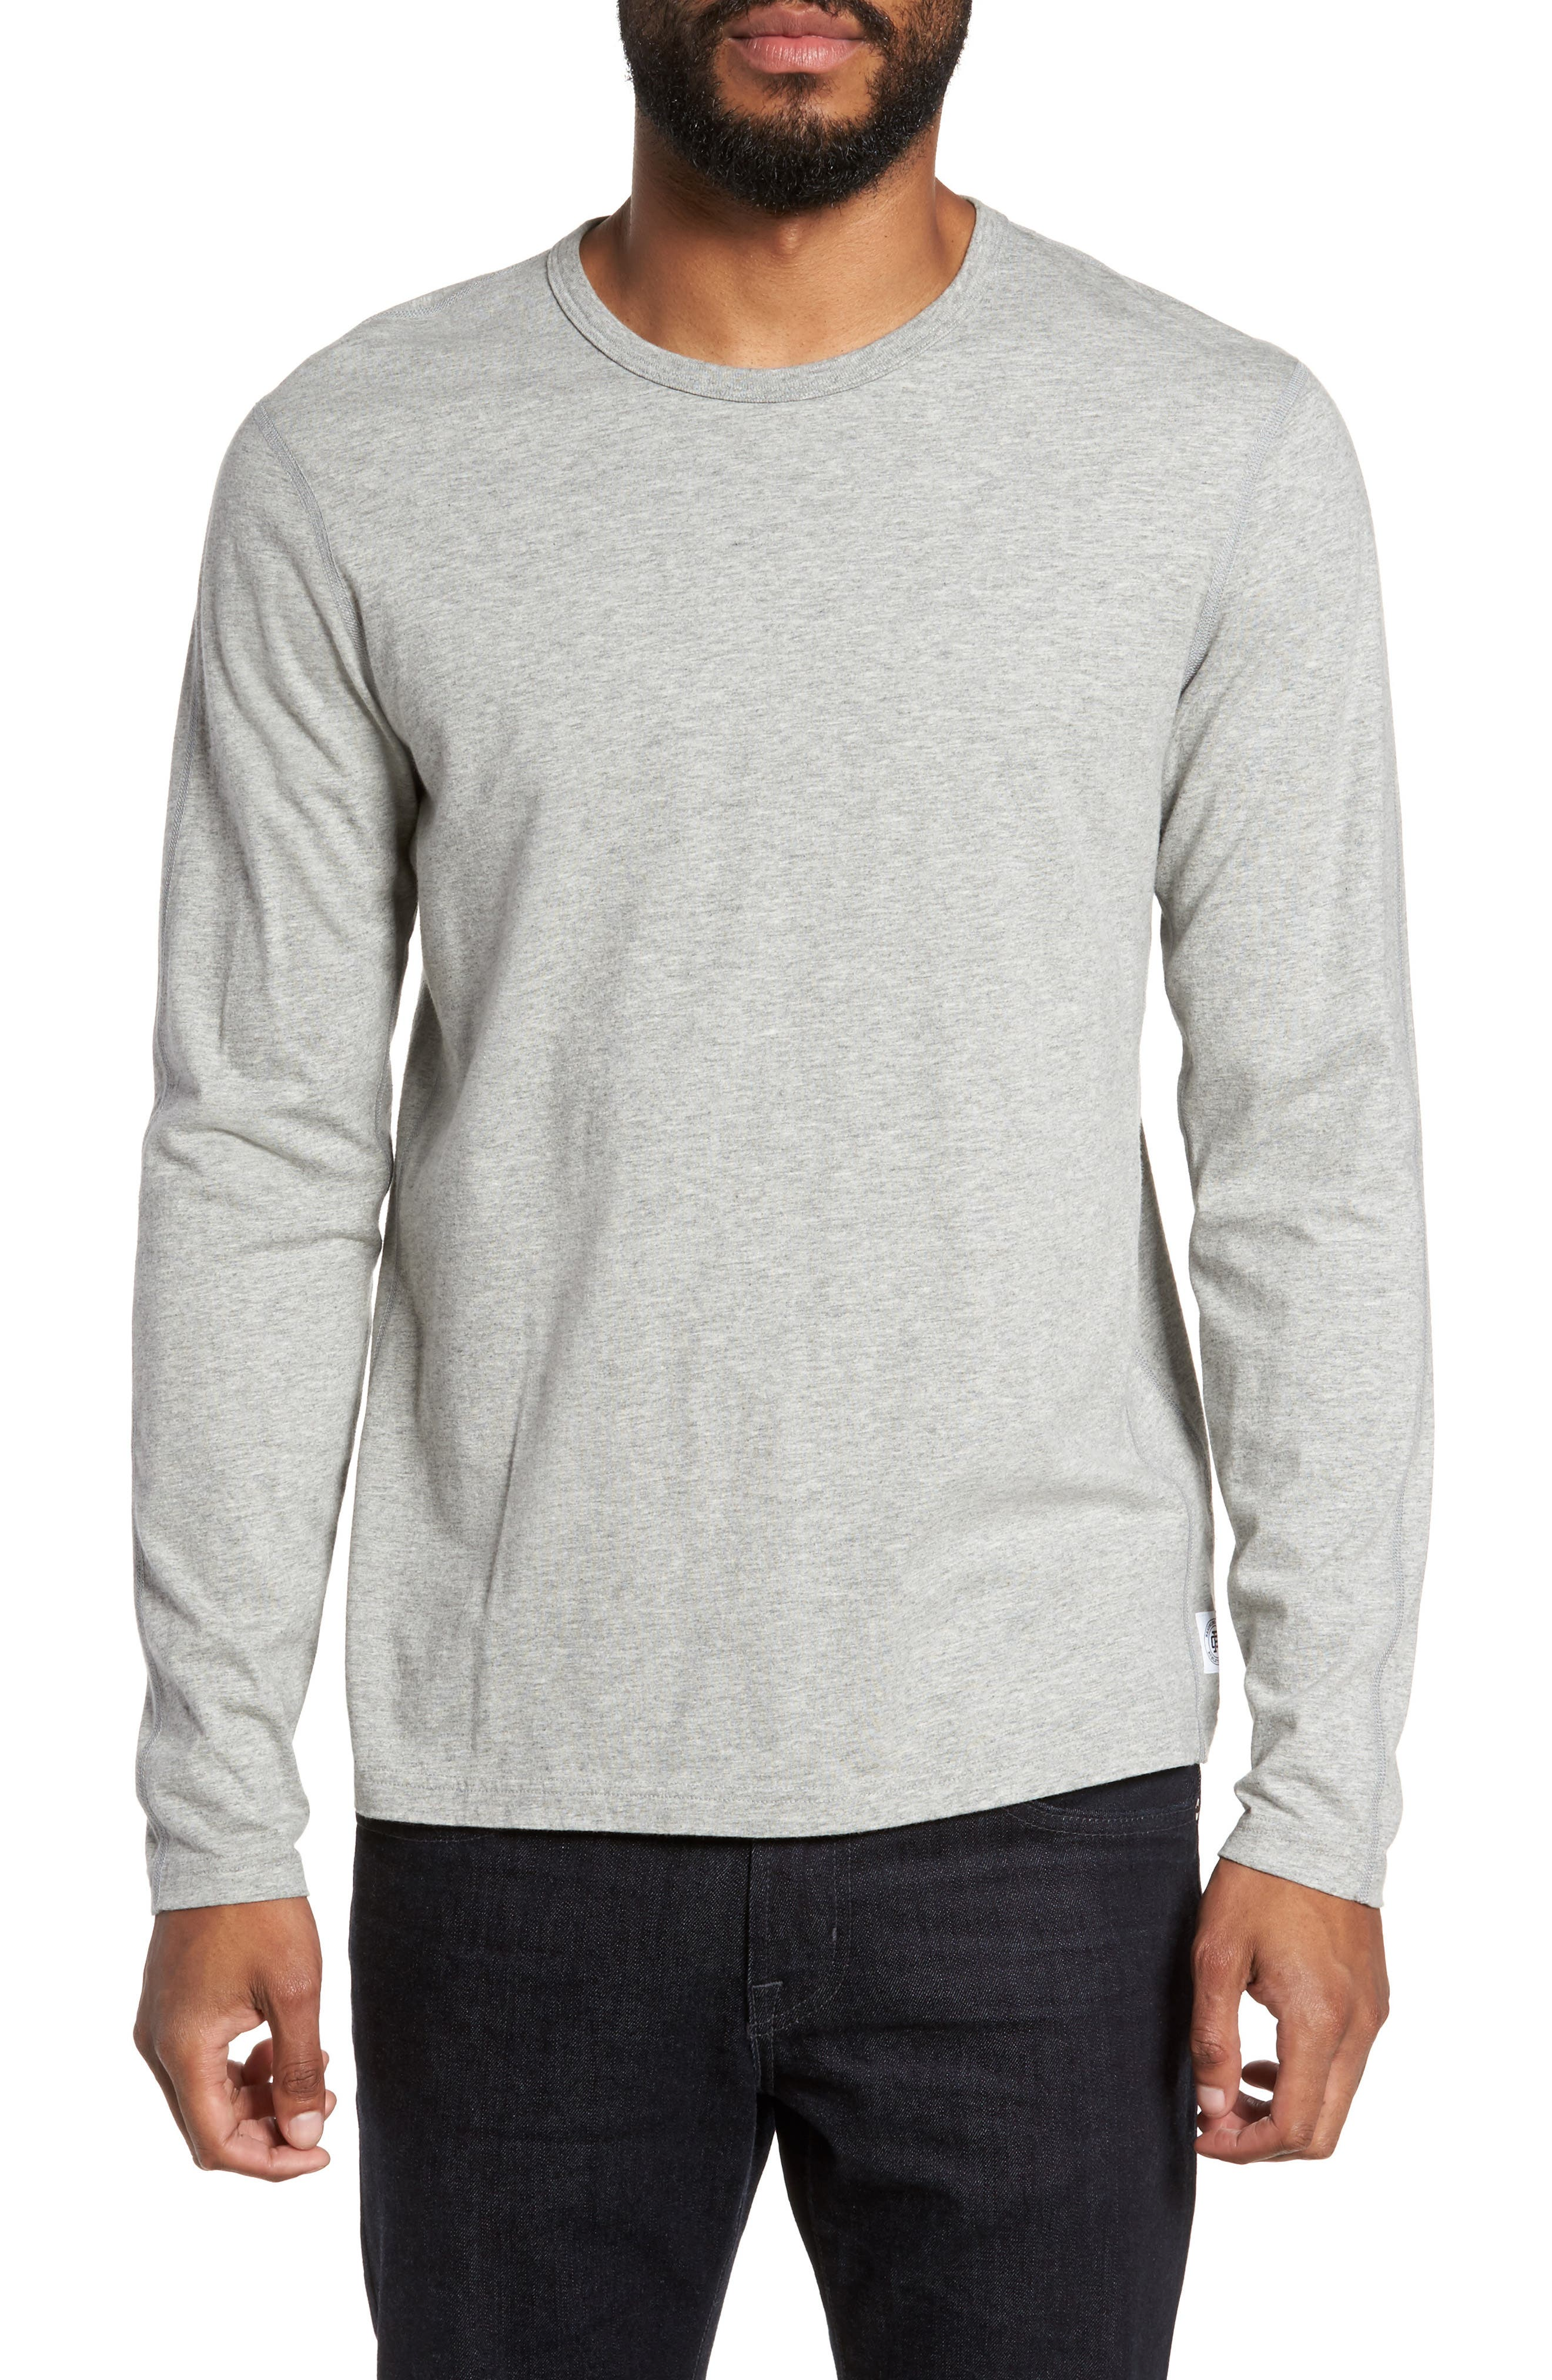 Reigning Champ Crewneck Long Sleeve T-Shirt